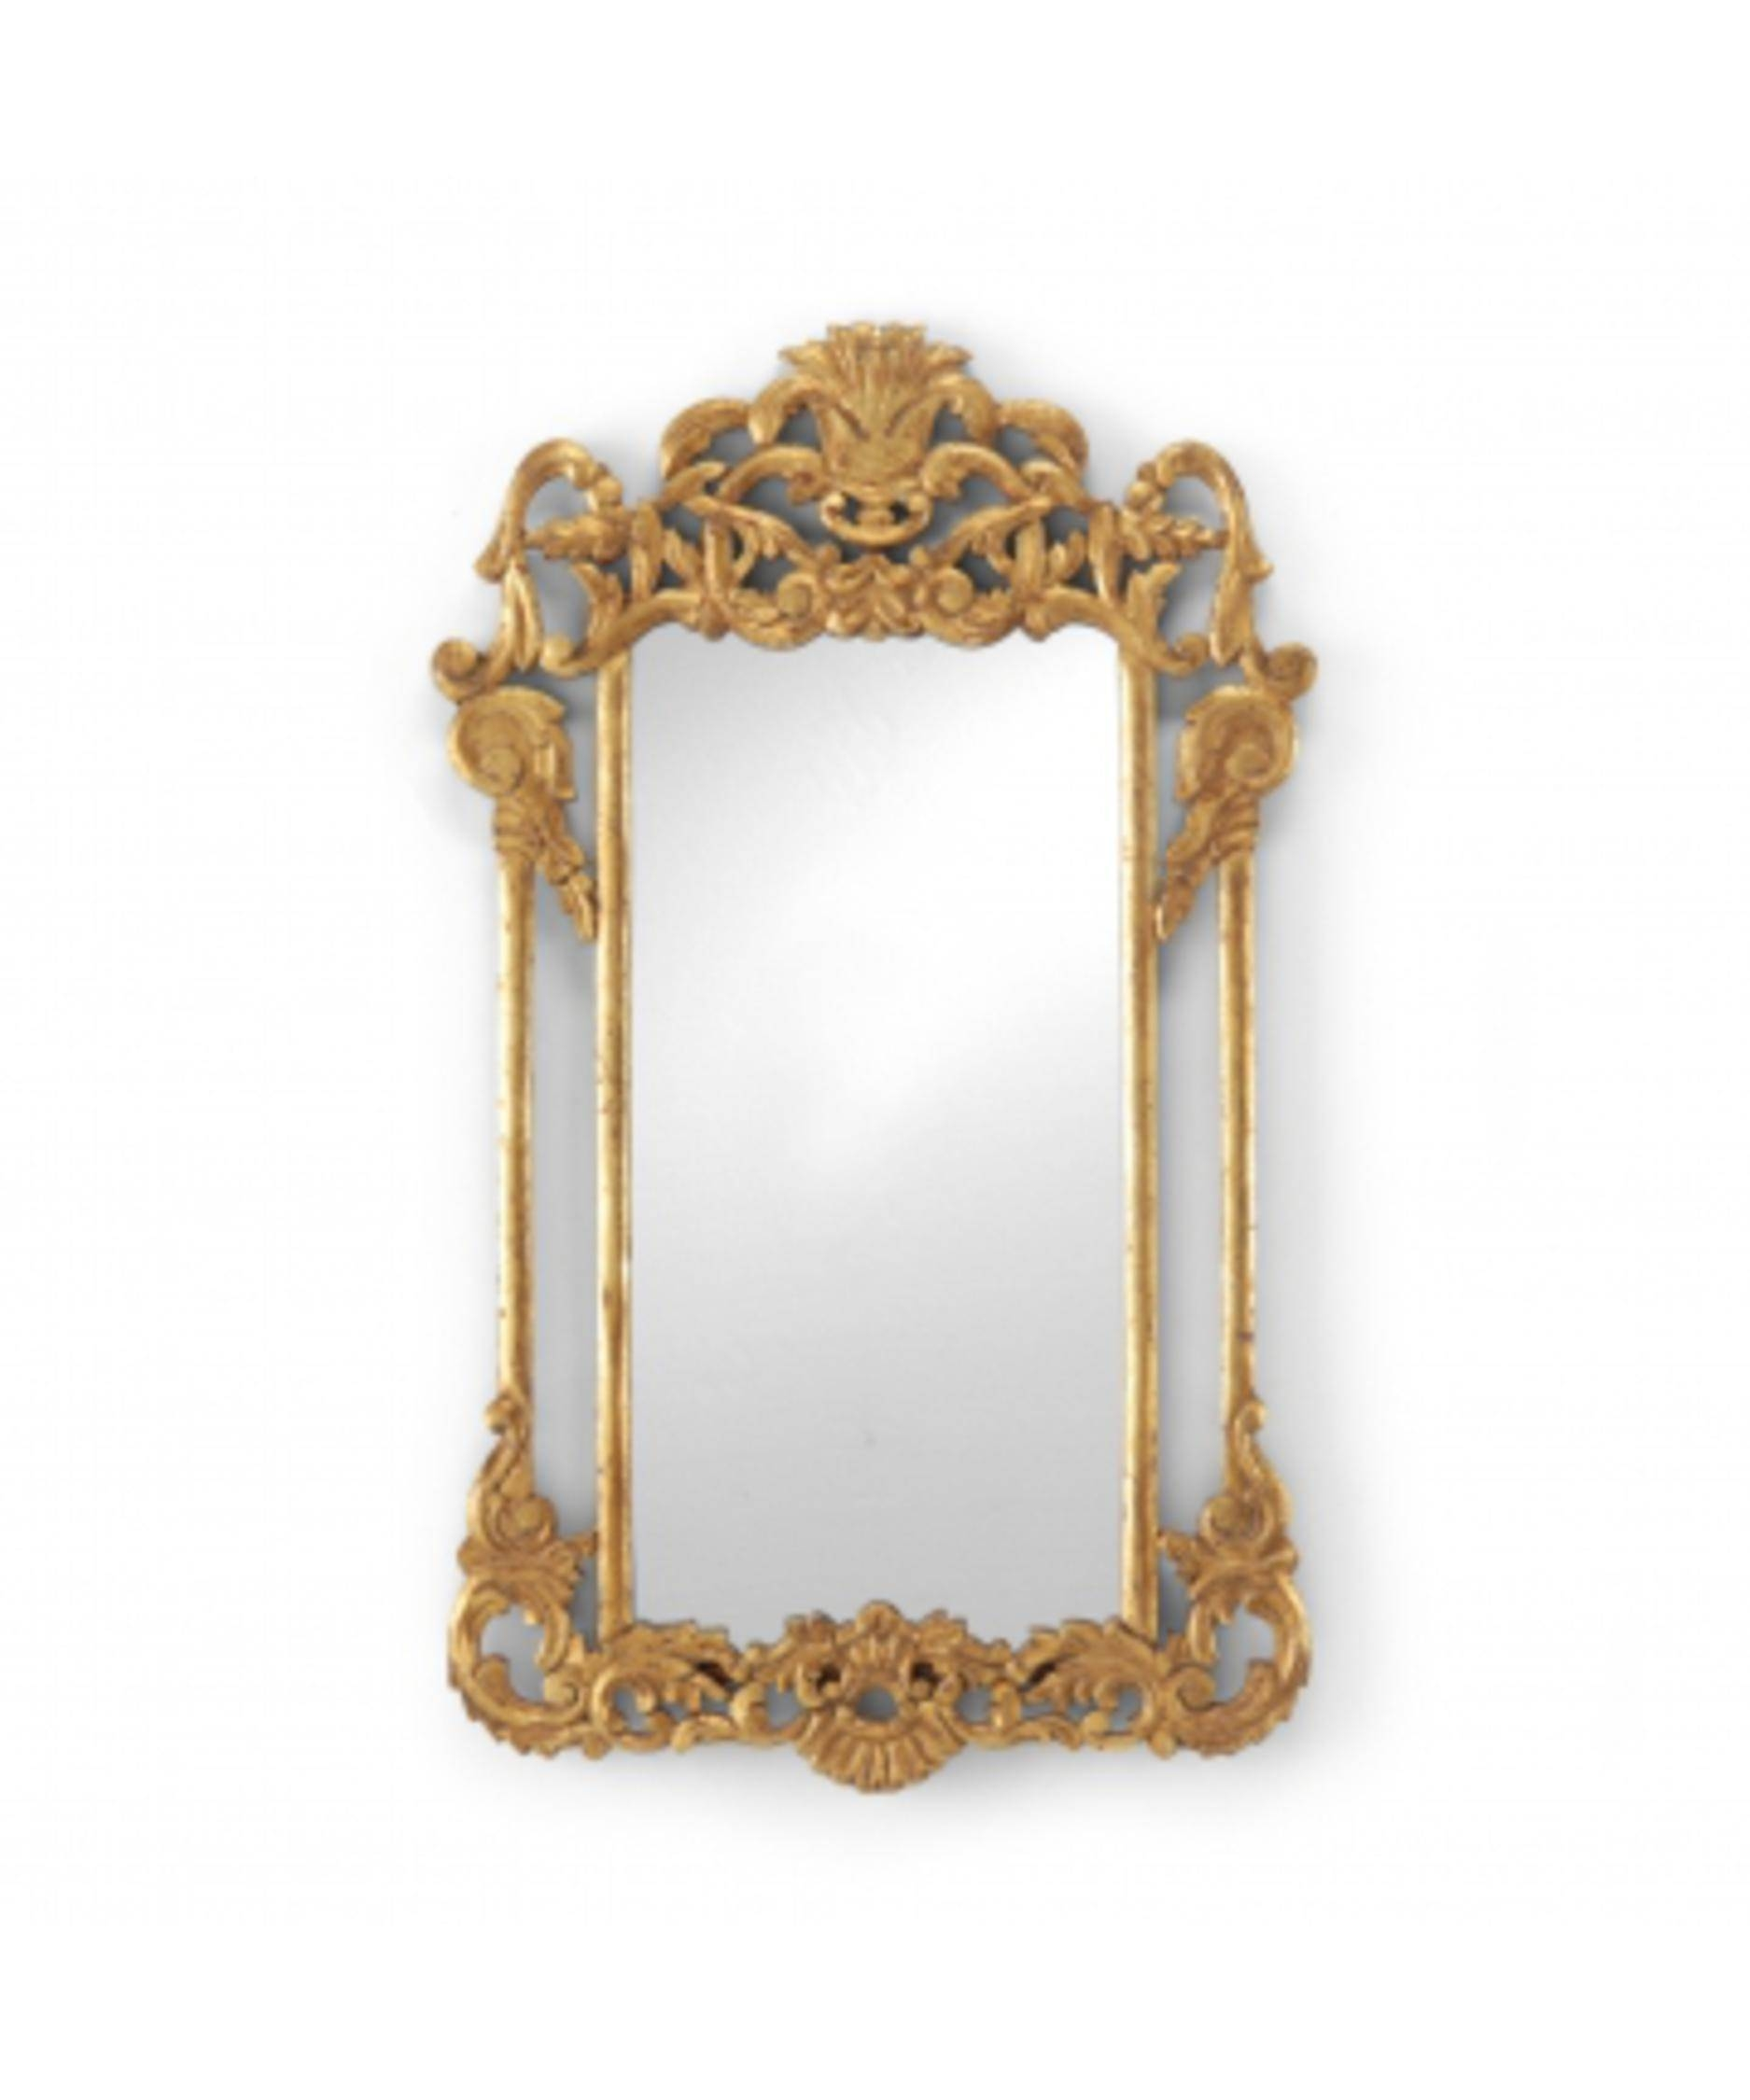 Chelsea House 381484 Ornate Framed Wall Mirror | Capitol Lighting regarding Ornate Mirrors (Image 12 of 25)